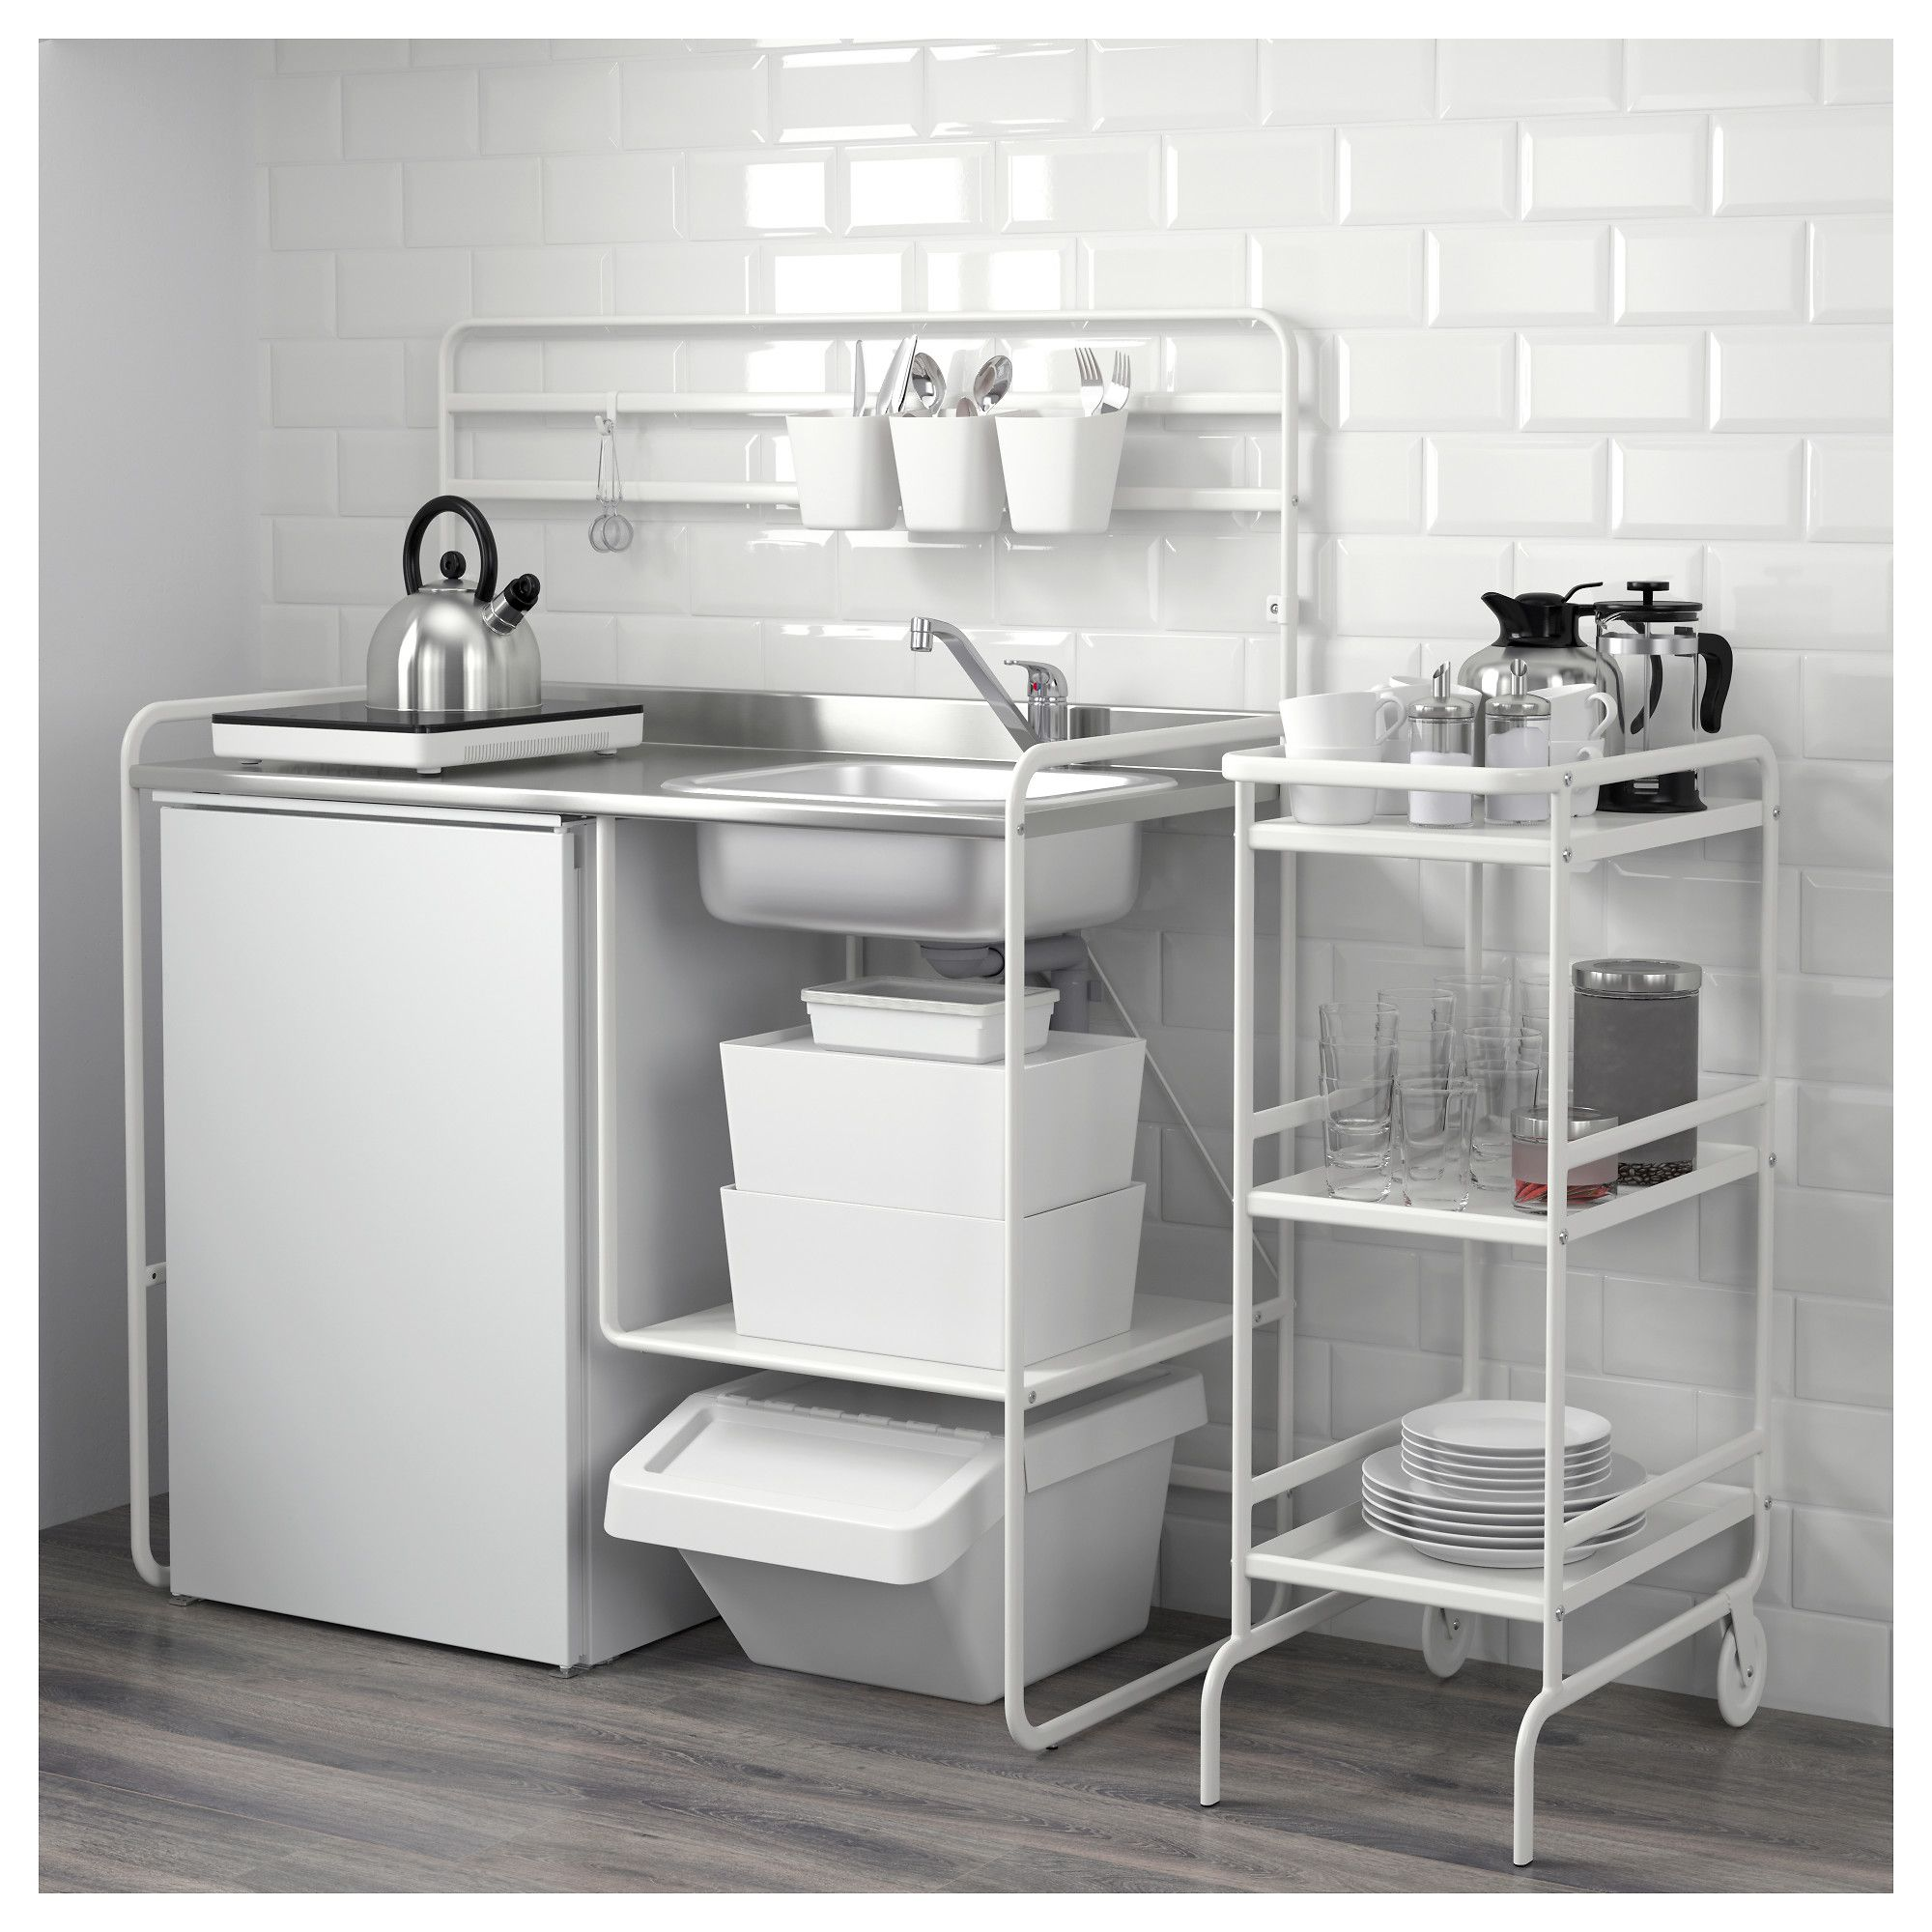 IKEA - SUNNERSTA Mini-kitchen | Mini kitchen, Kitchens and Tiny houses